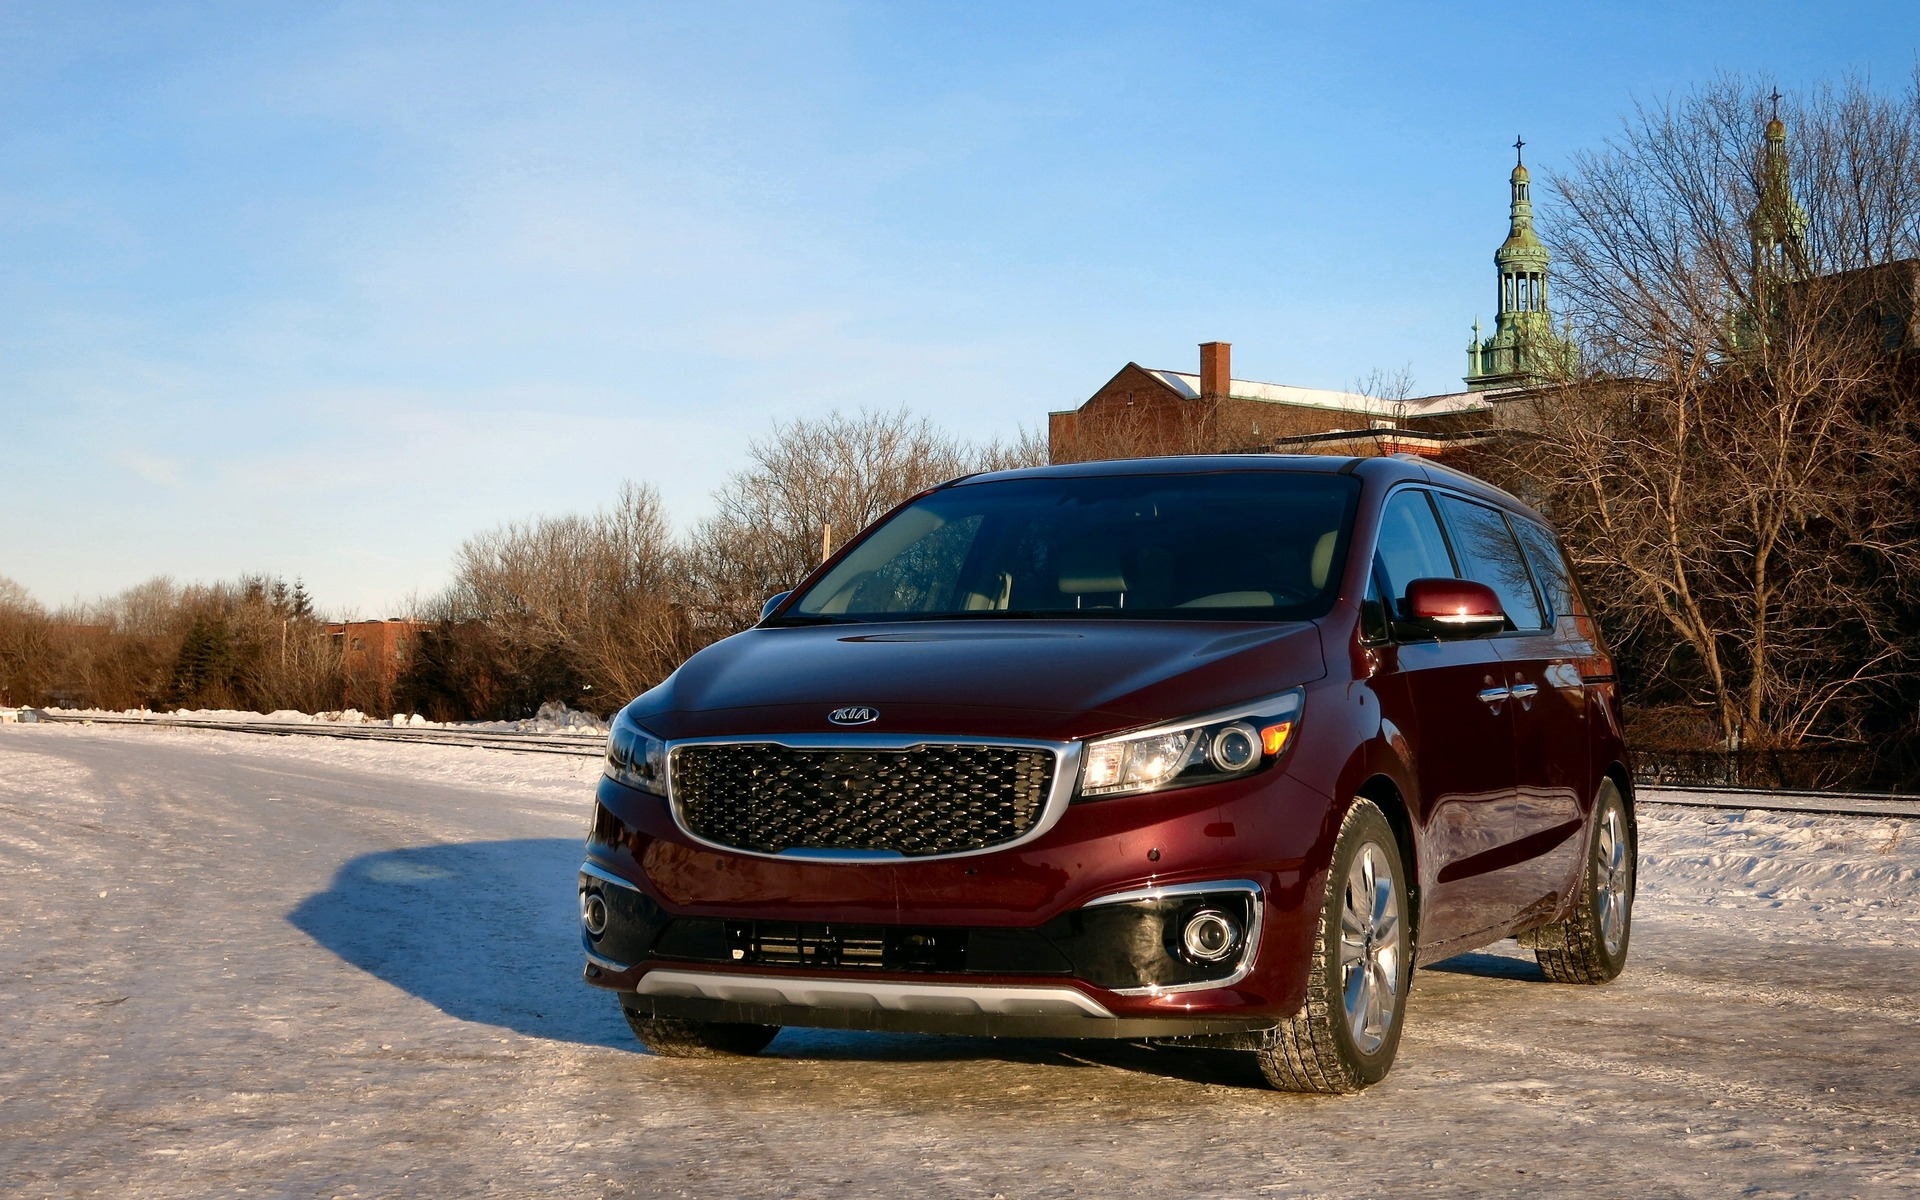 It's hard not to see the 2015 Kia Sedona as anything but a game-changer.